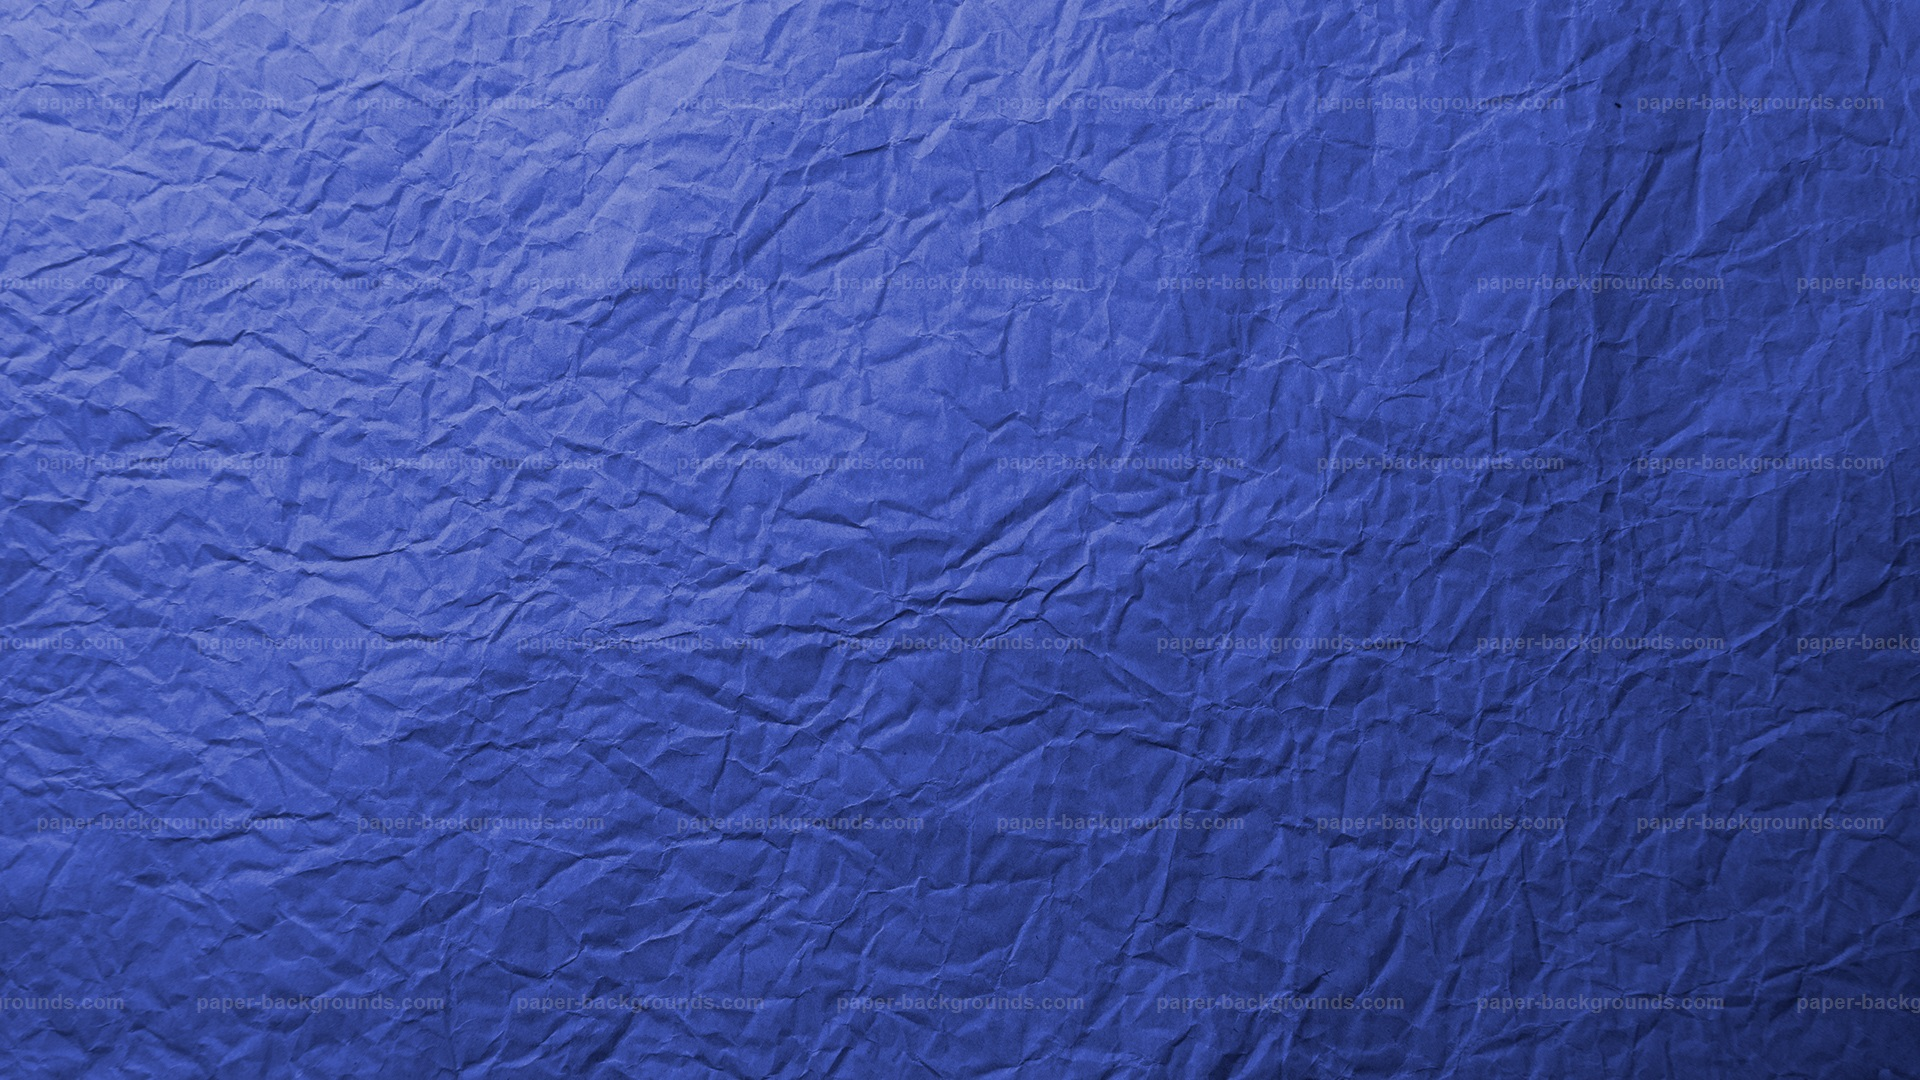 Paper backgrounds blue wrinkled paper texture hd